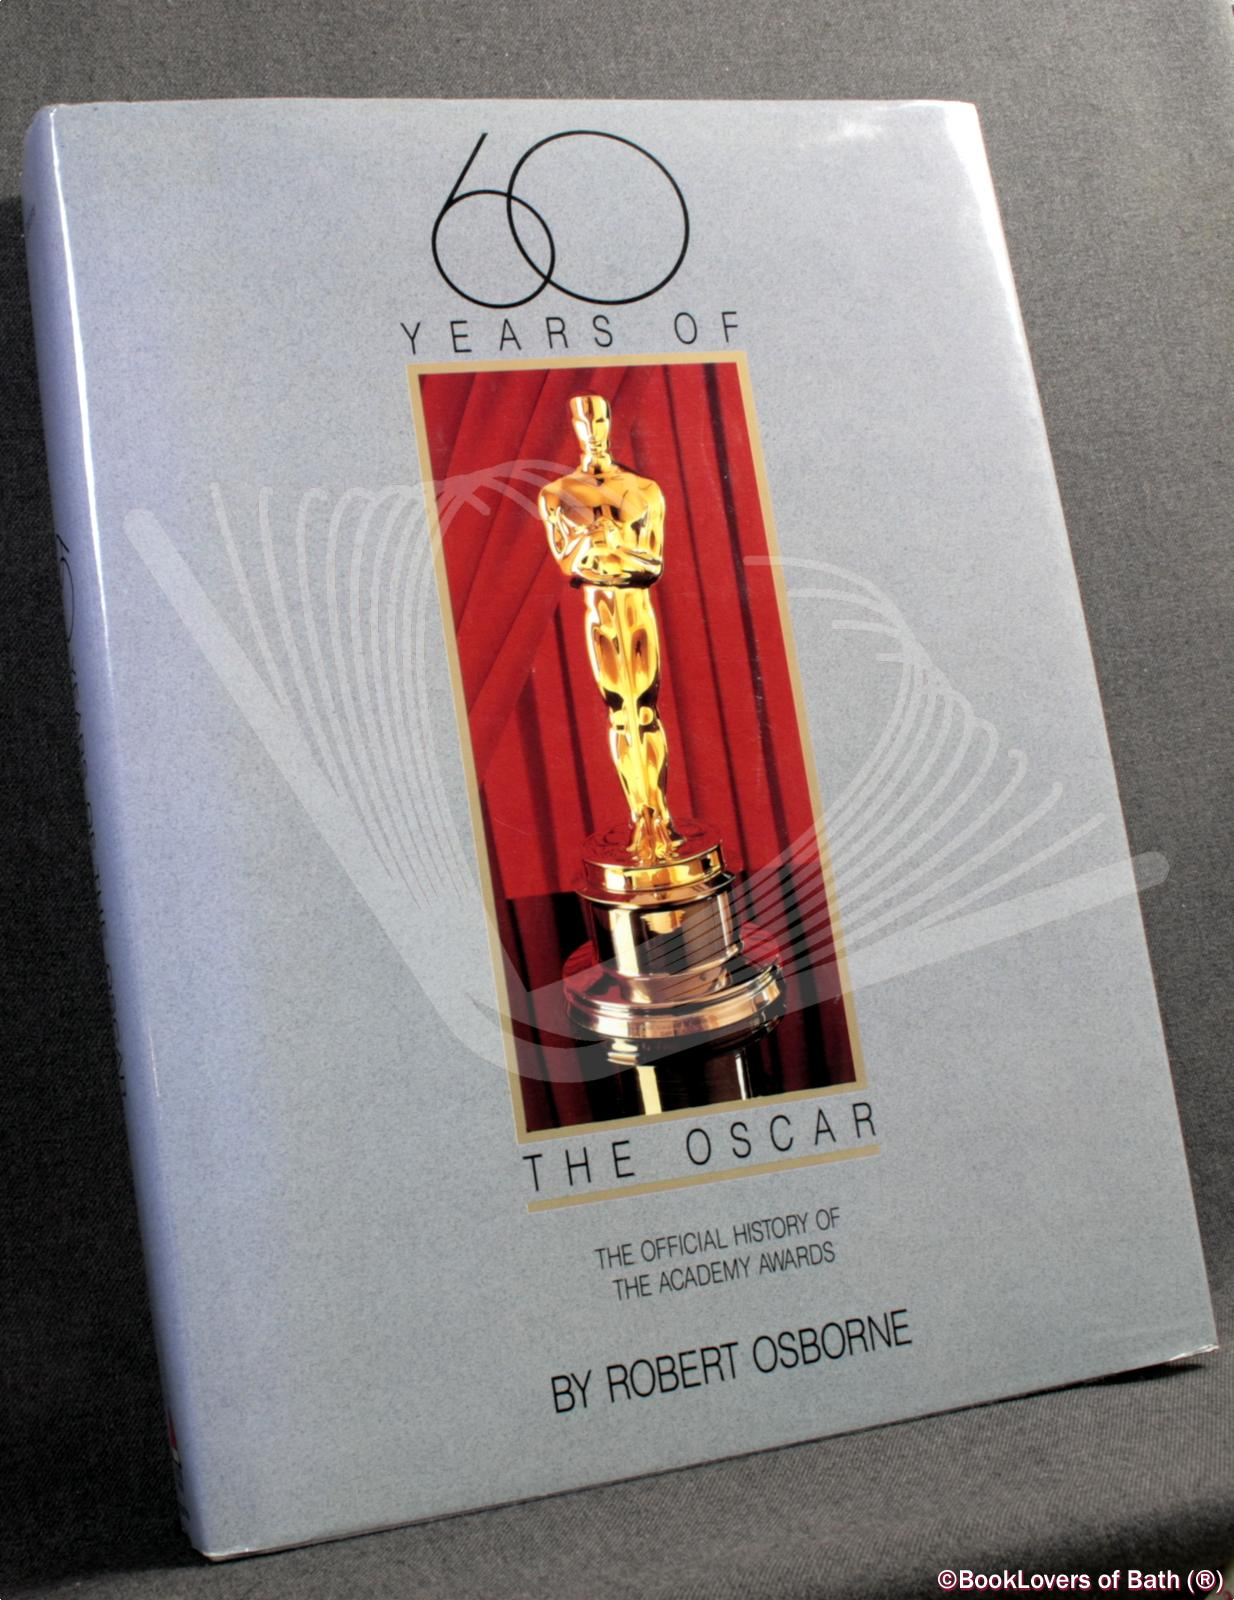 60 Years of the Oscar: The Official History of the Academy Awards - Robert Osborne